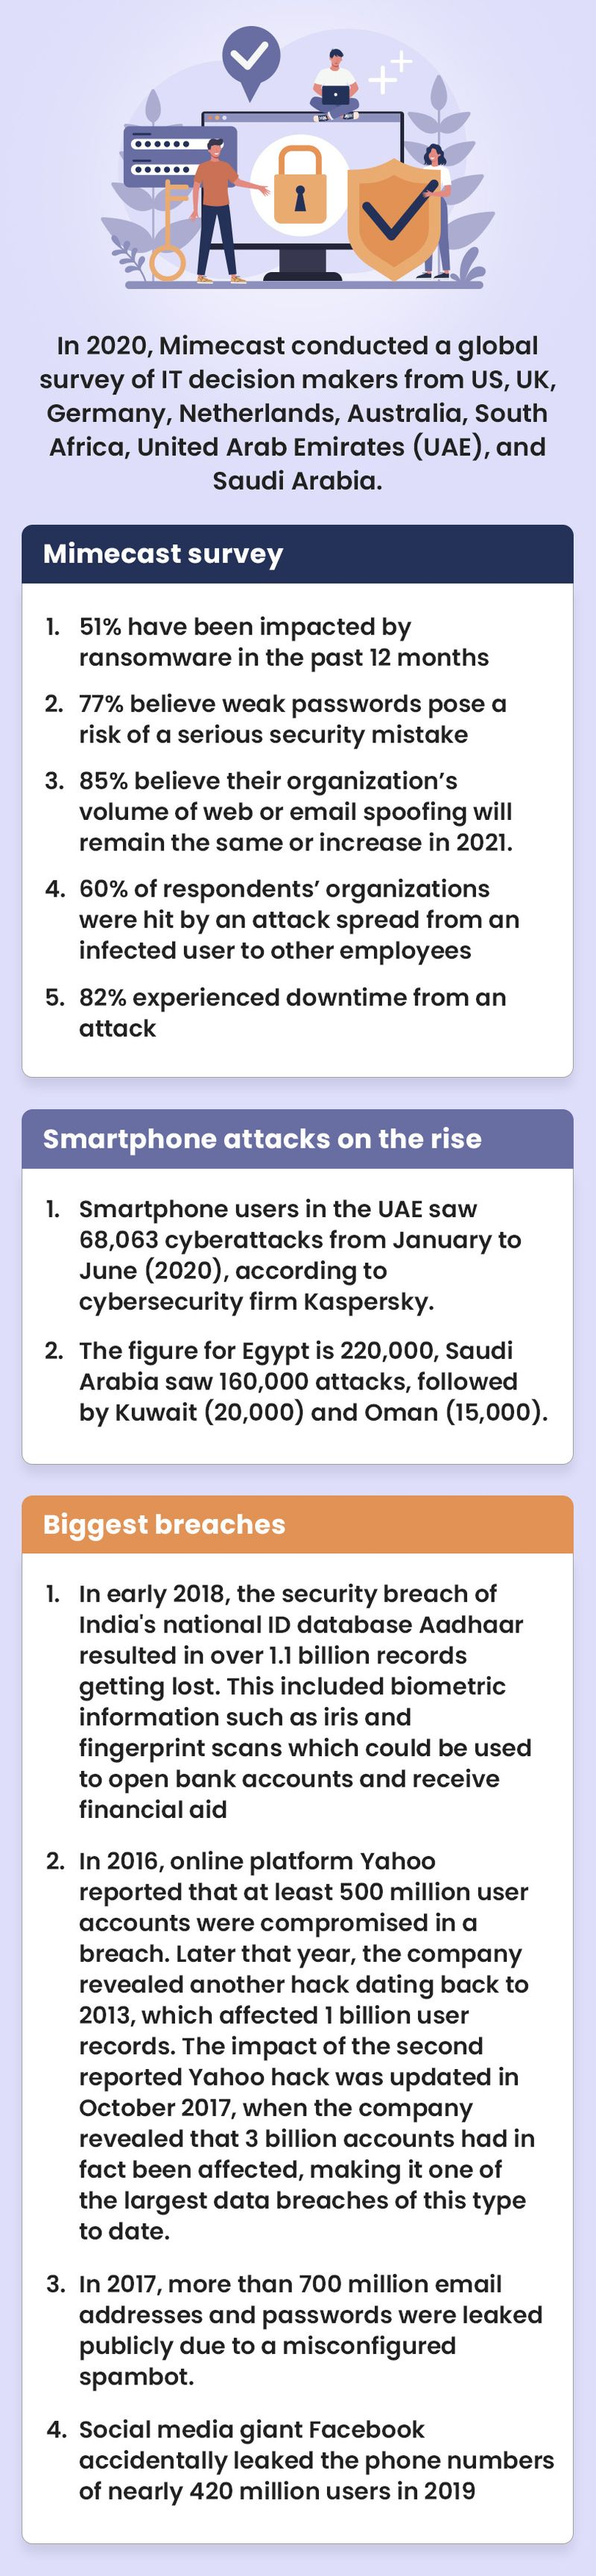 Cyber threats and security